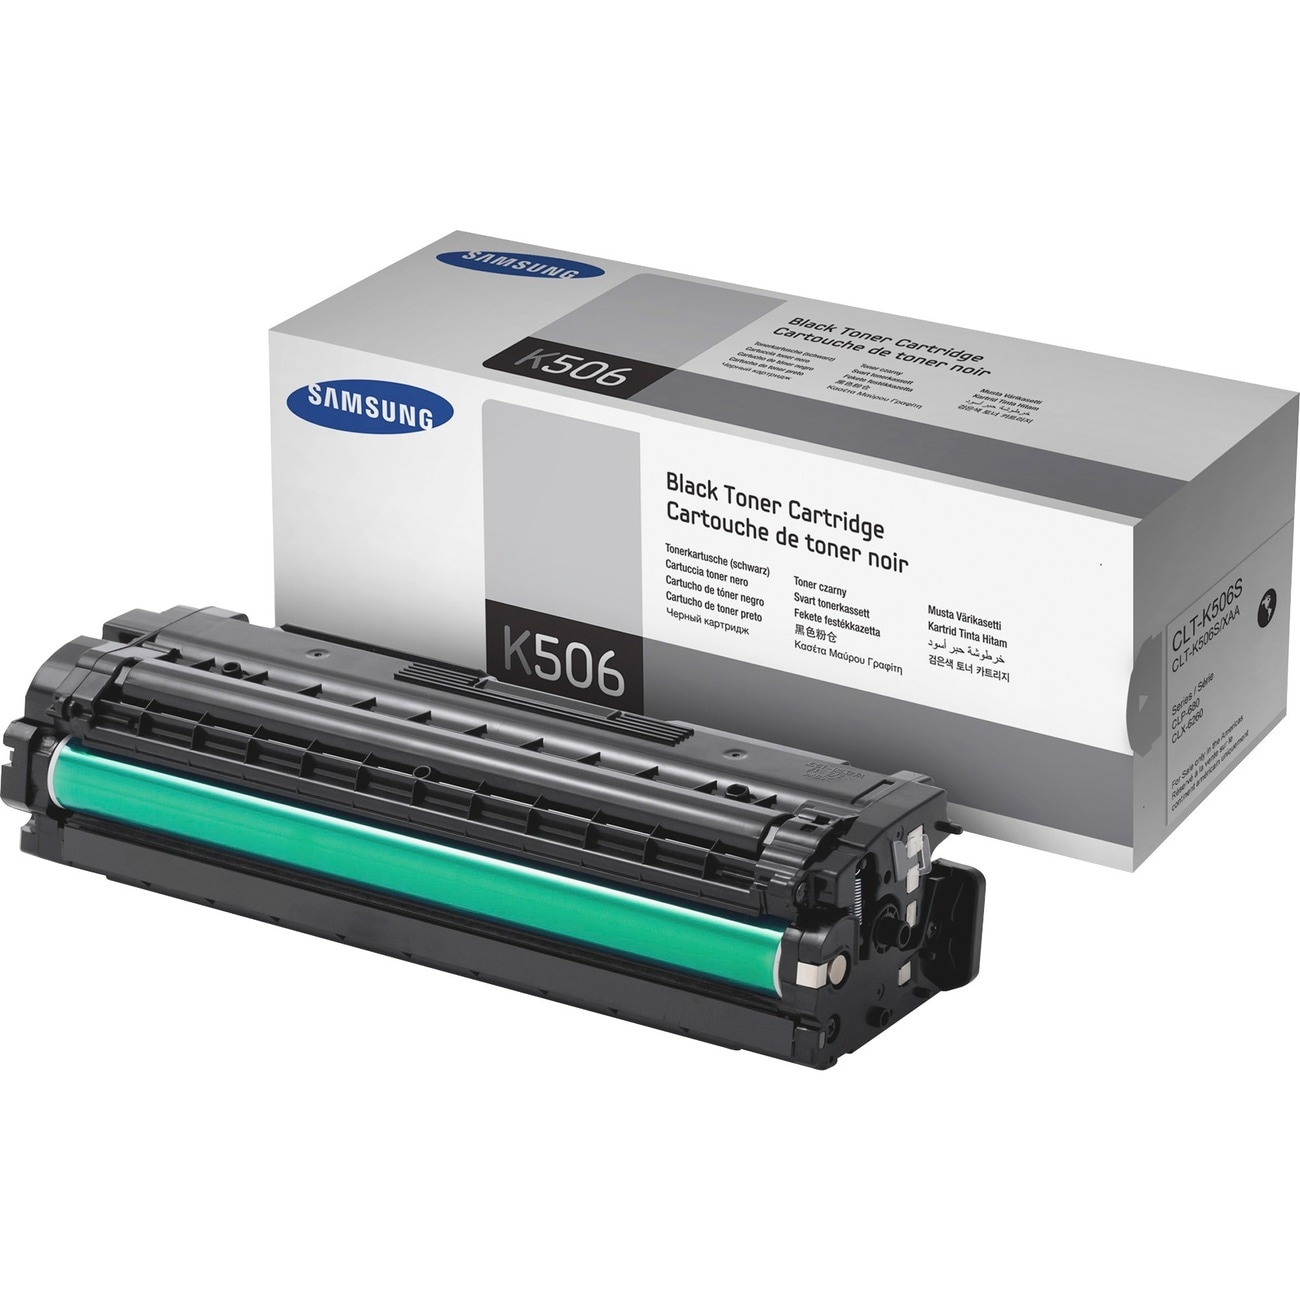 Samsung CLT-K506S Toner Cartridge - Black - Thumbnail 0